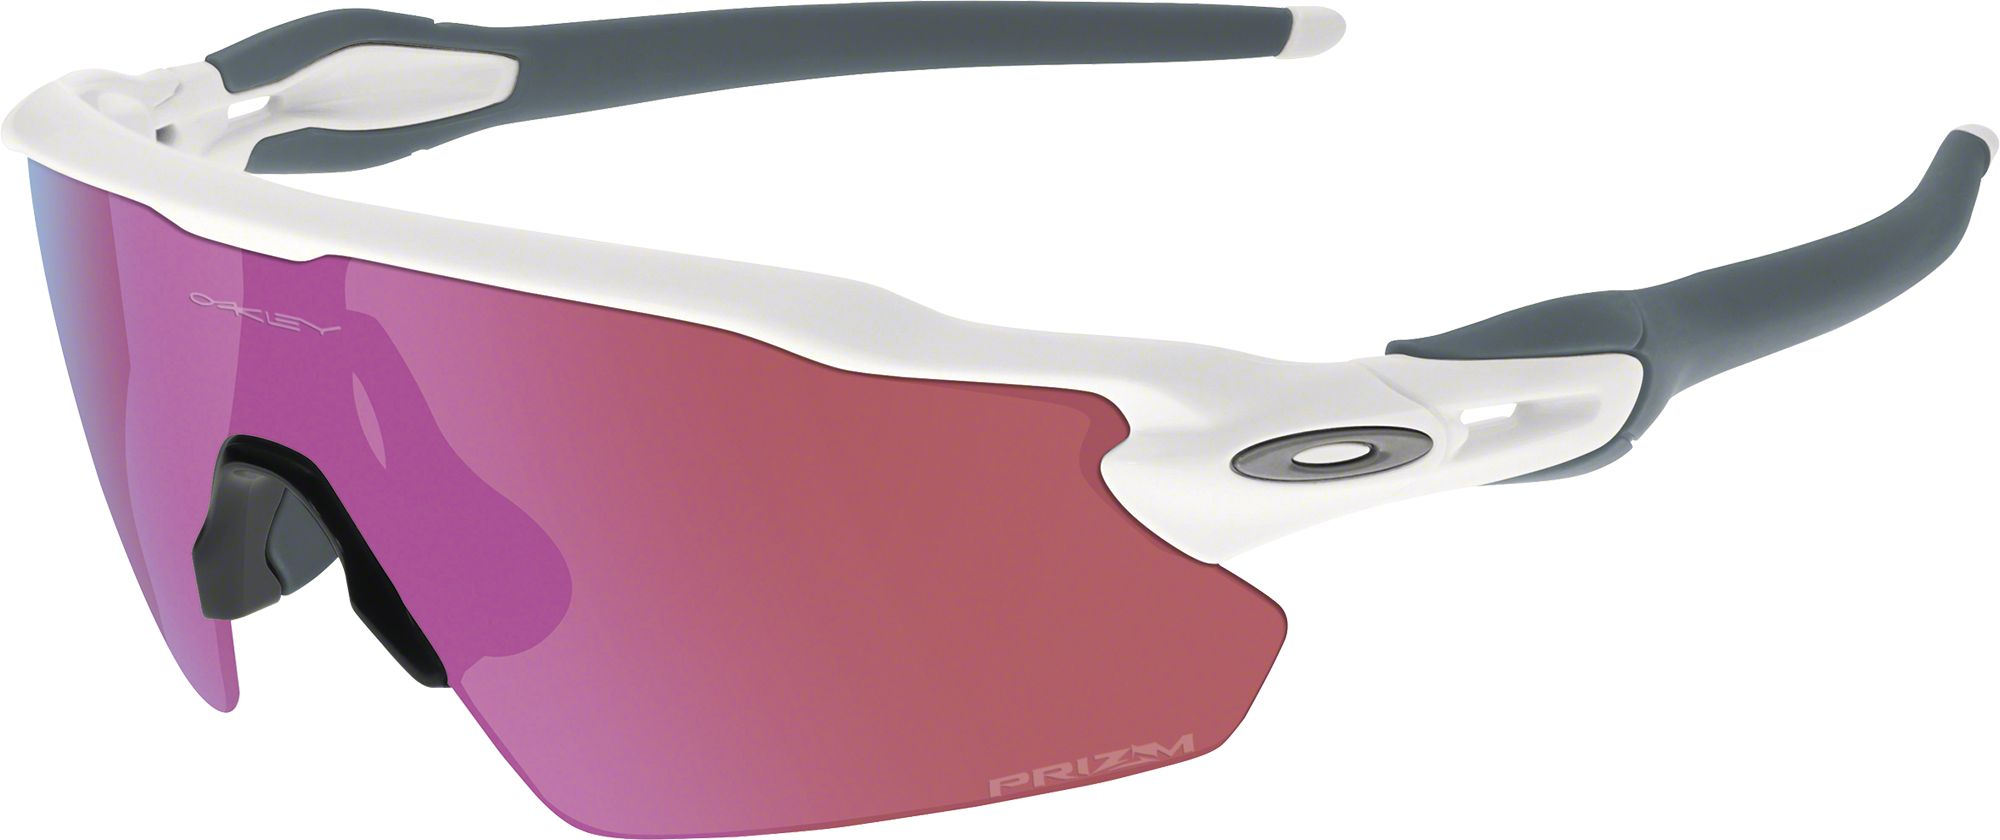 new oakley baseball sunglasses  product image oakley radar ev pitch baseball sunglasses